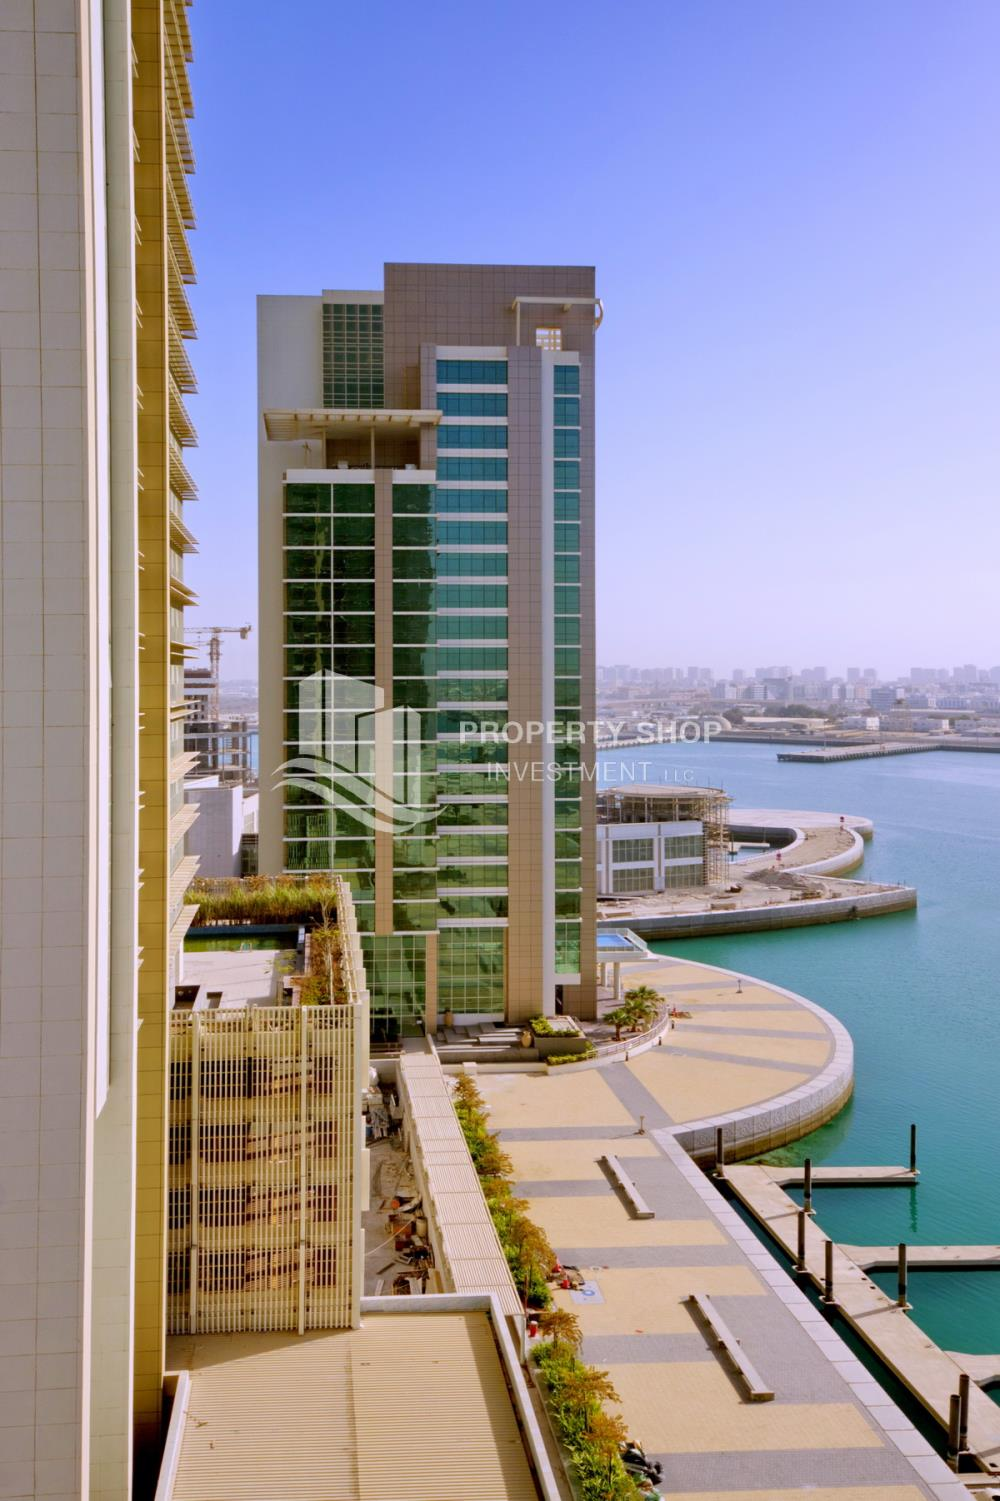 Community-High Floor 3BR + M Available Apt in Ocean Terrace With Canal view